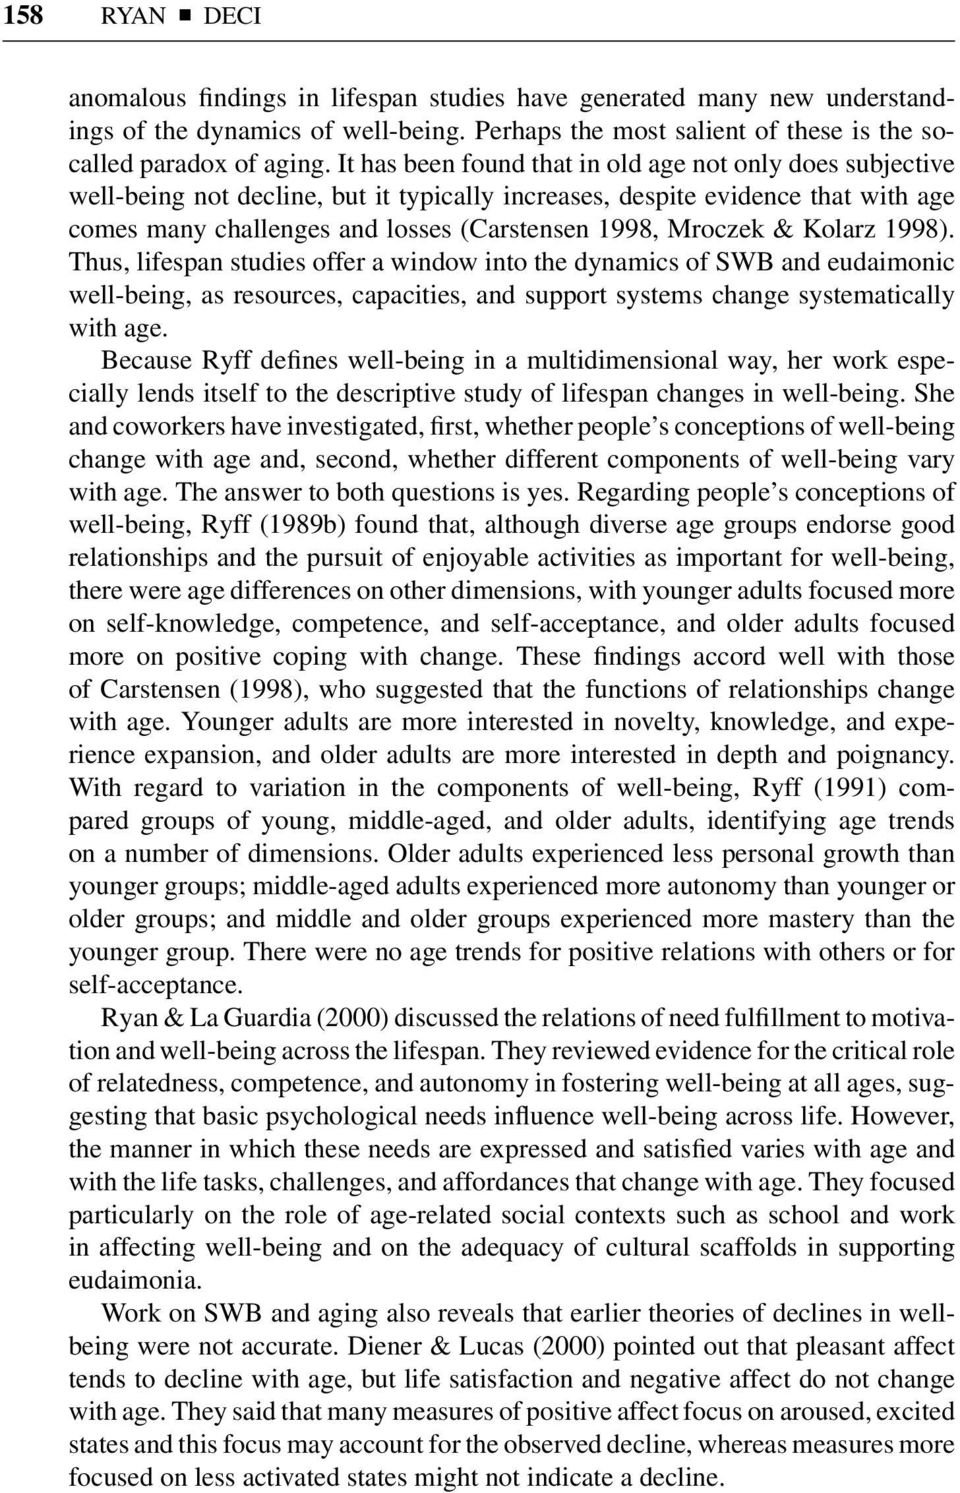 Mroczek & Kolarz 1998). Thus, lifespan studies offer a window into the dynamics of SWB and eudaimonic well-being, as resources, capacities, and support systems change systematically with age.